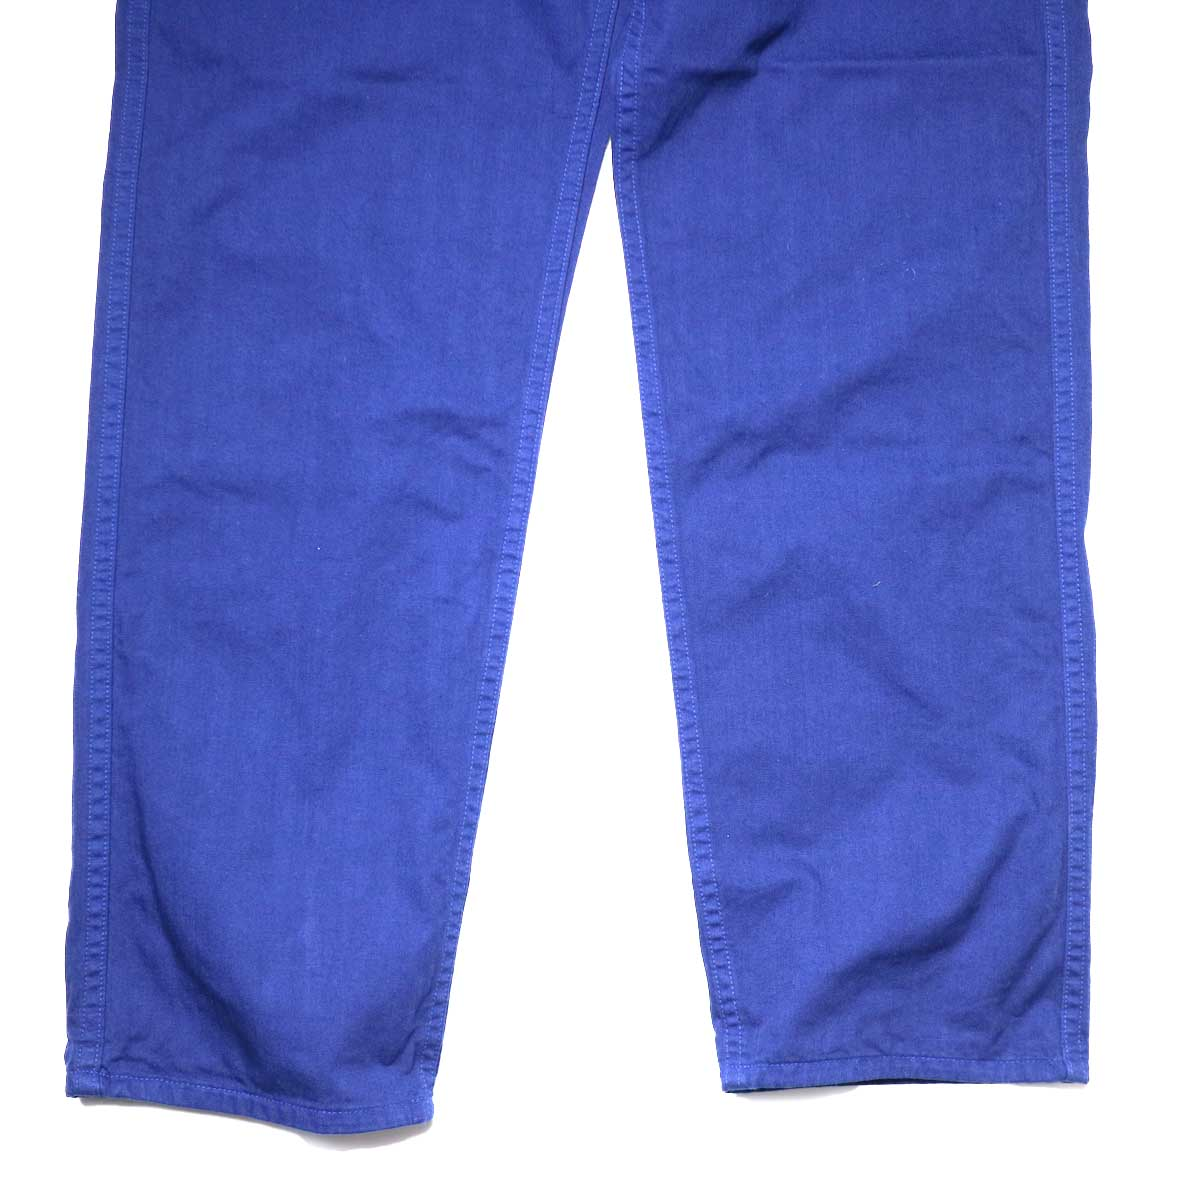 orSlow / French Work Pants (Blue) 裾